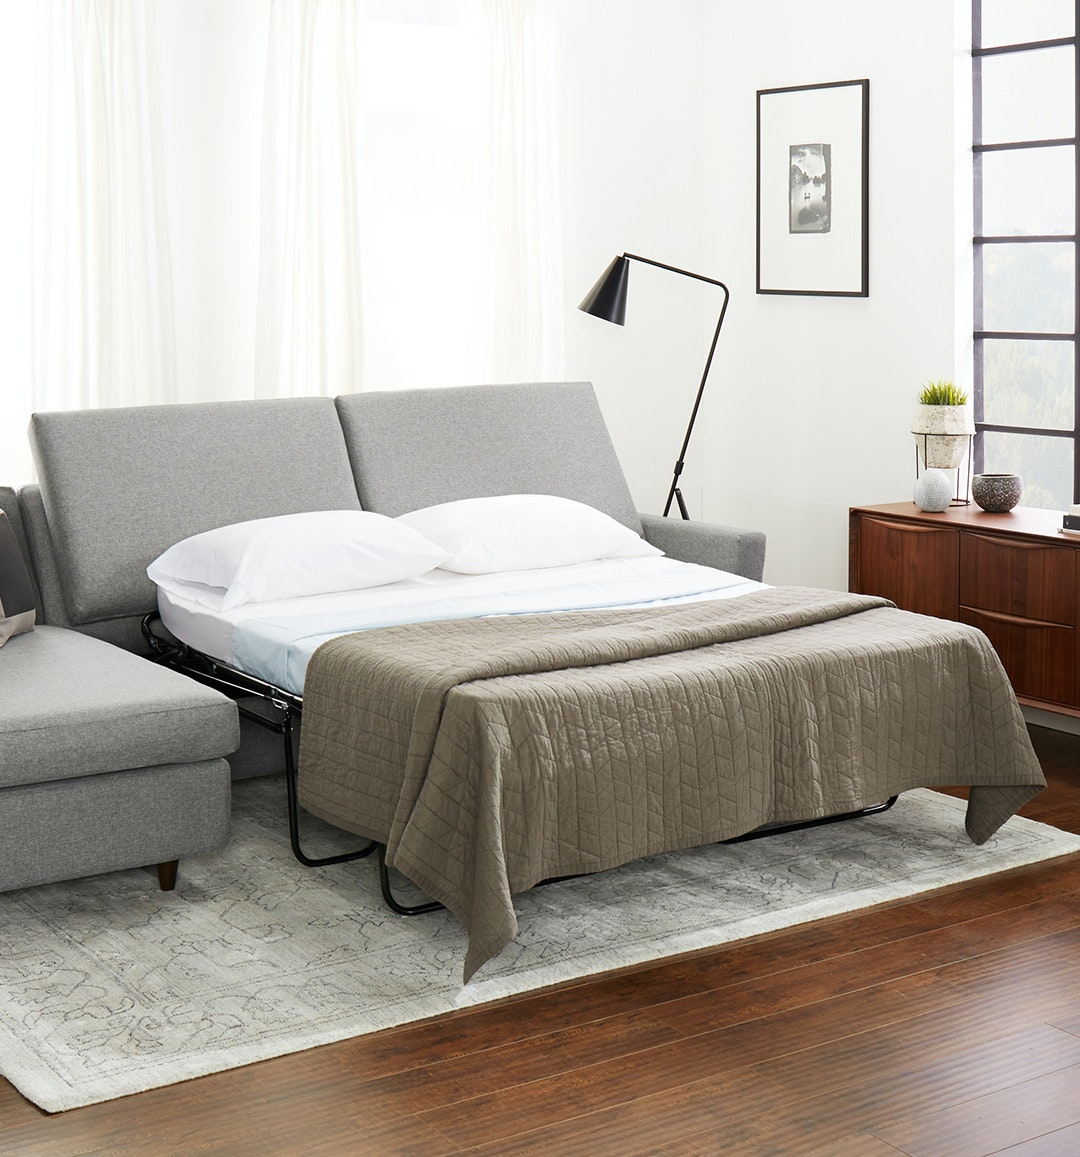 Create the Perfect Guest Room